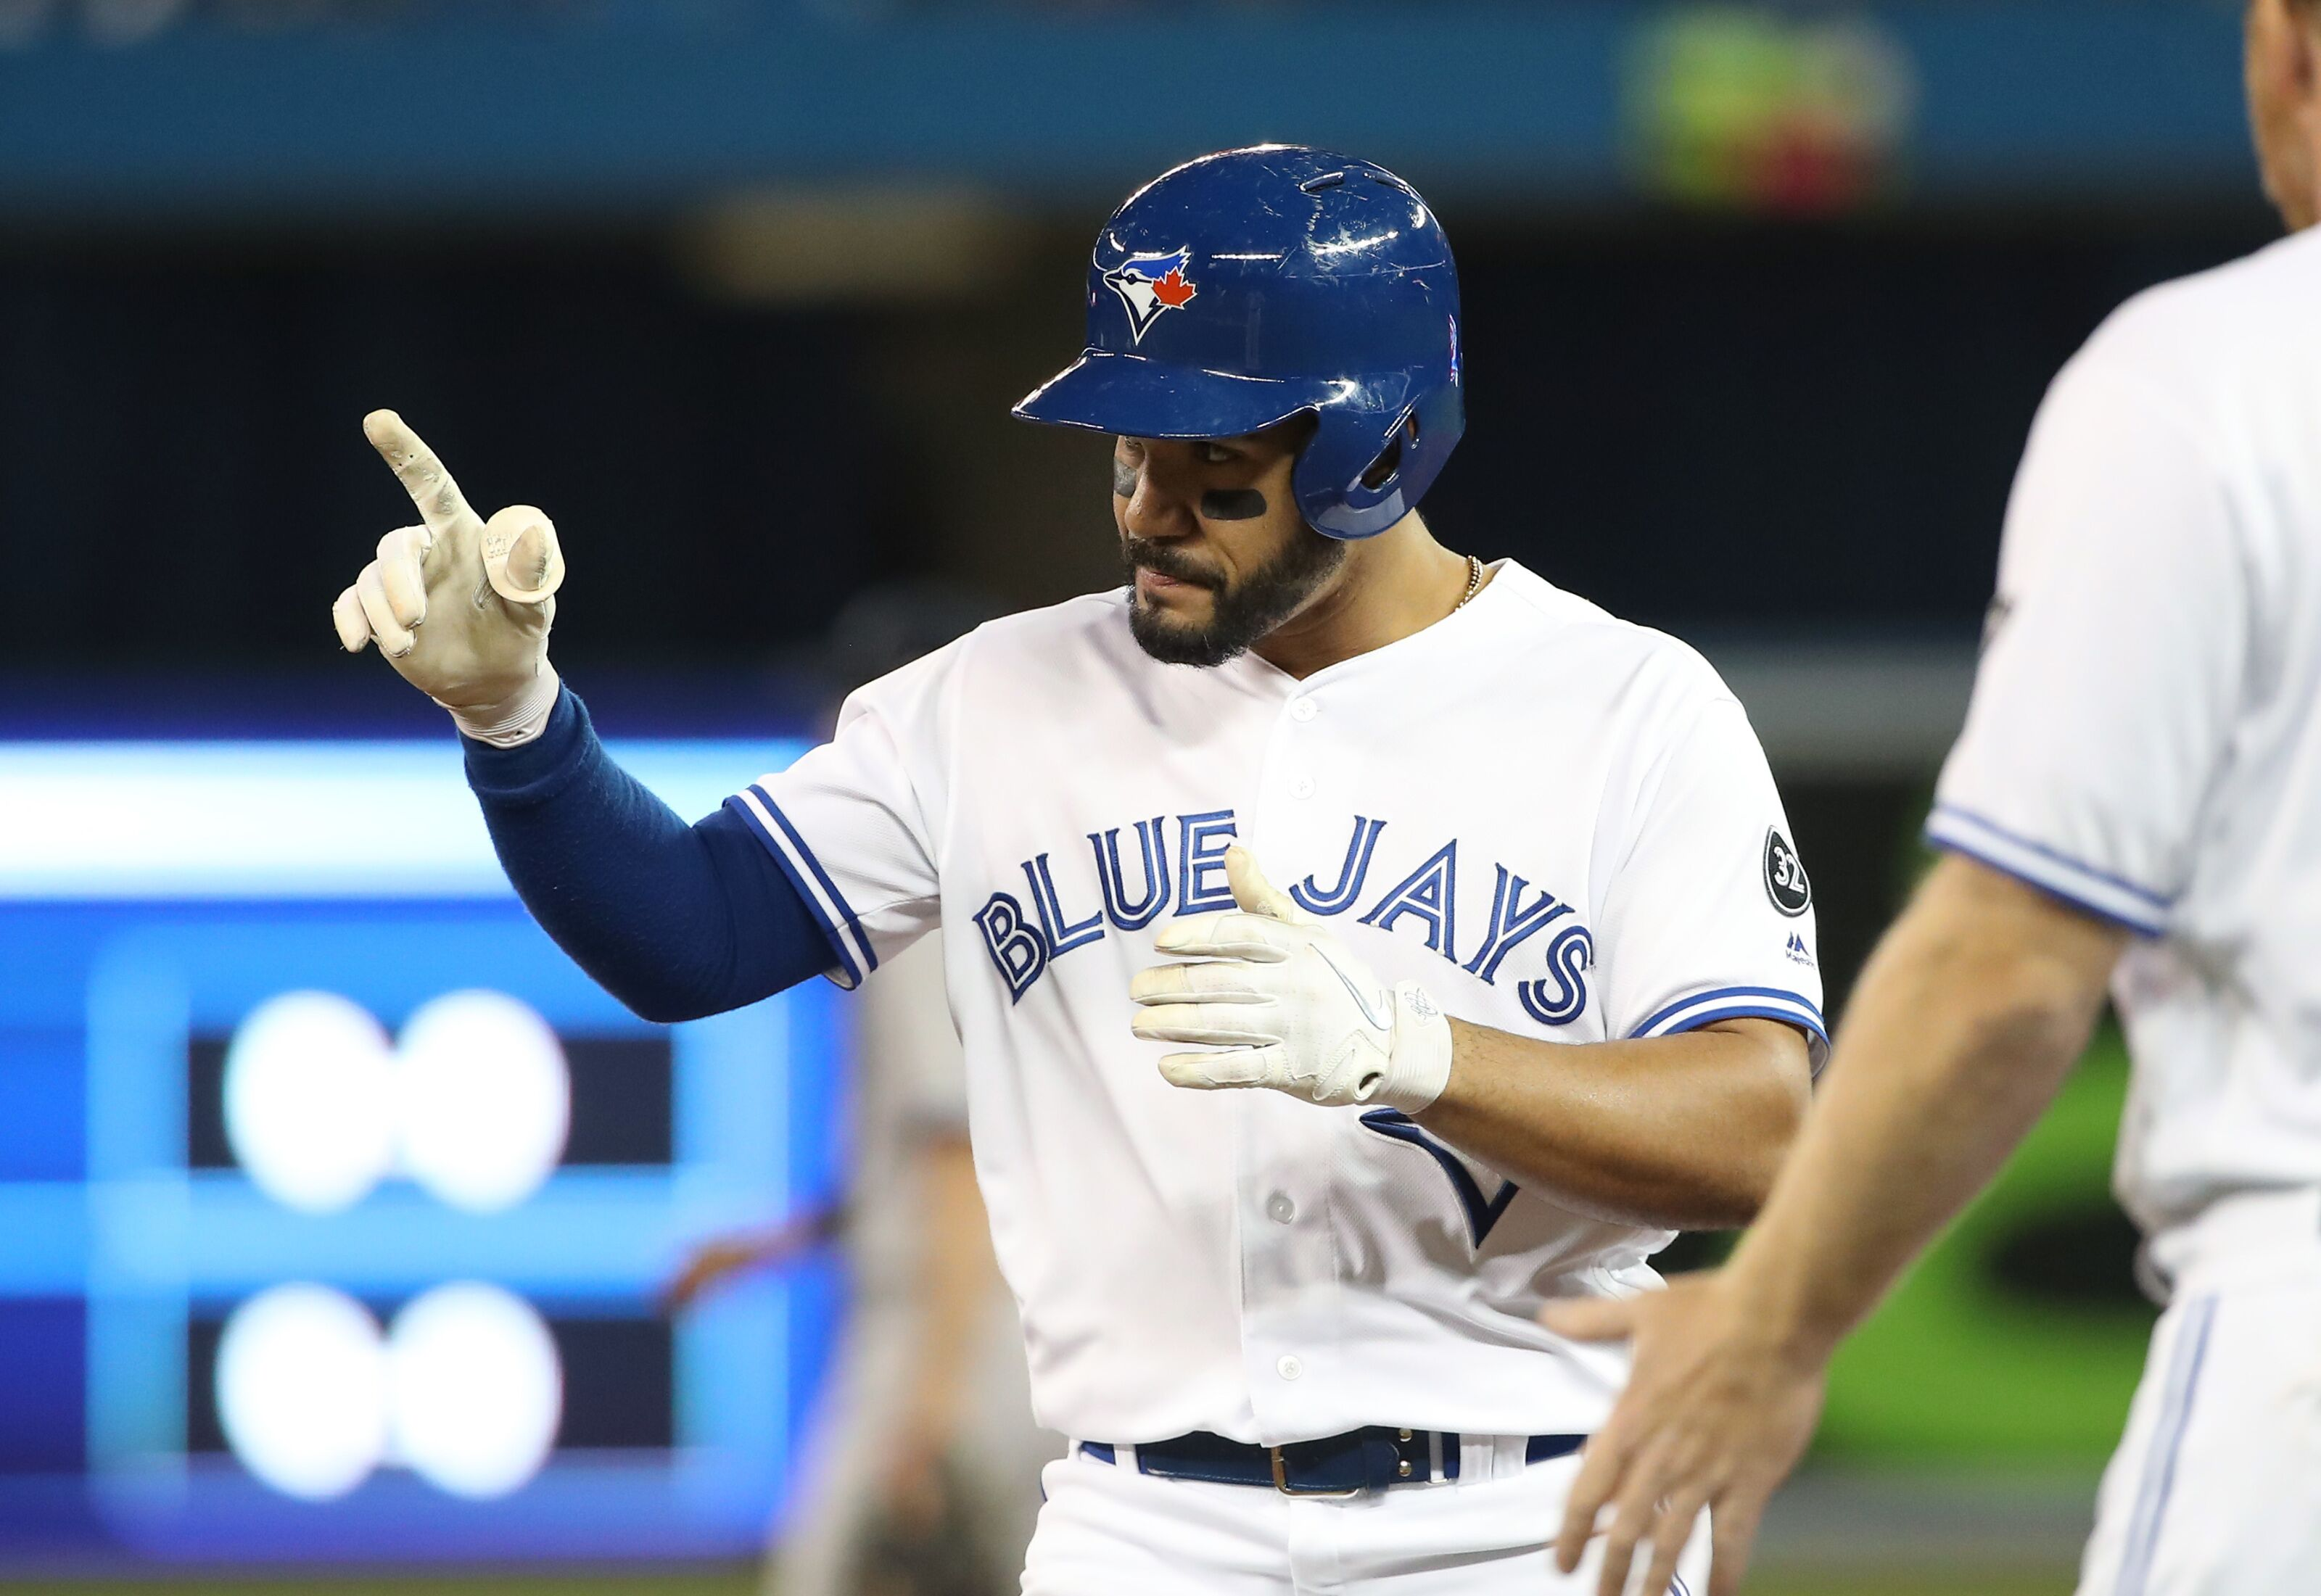 Blue Jays: New spot in the lineup could do wonders for Devon Travis